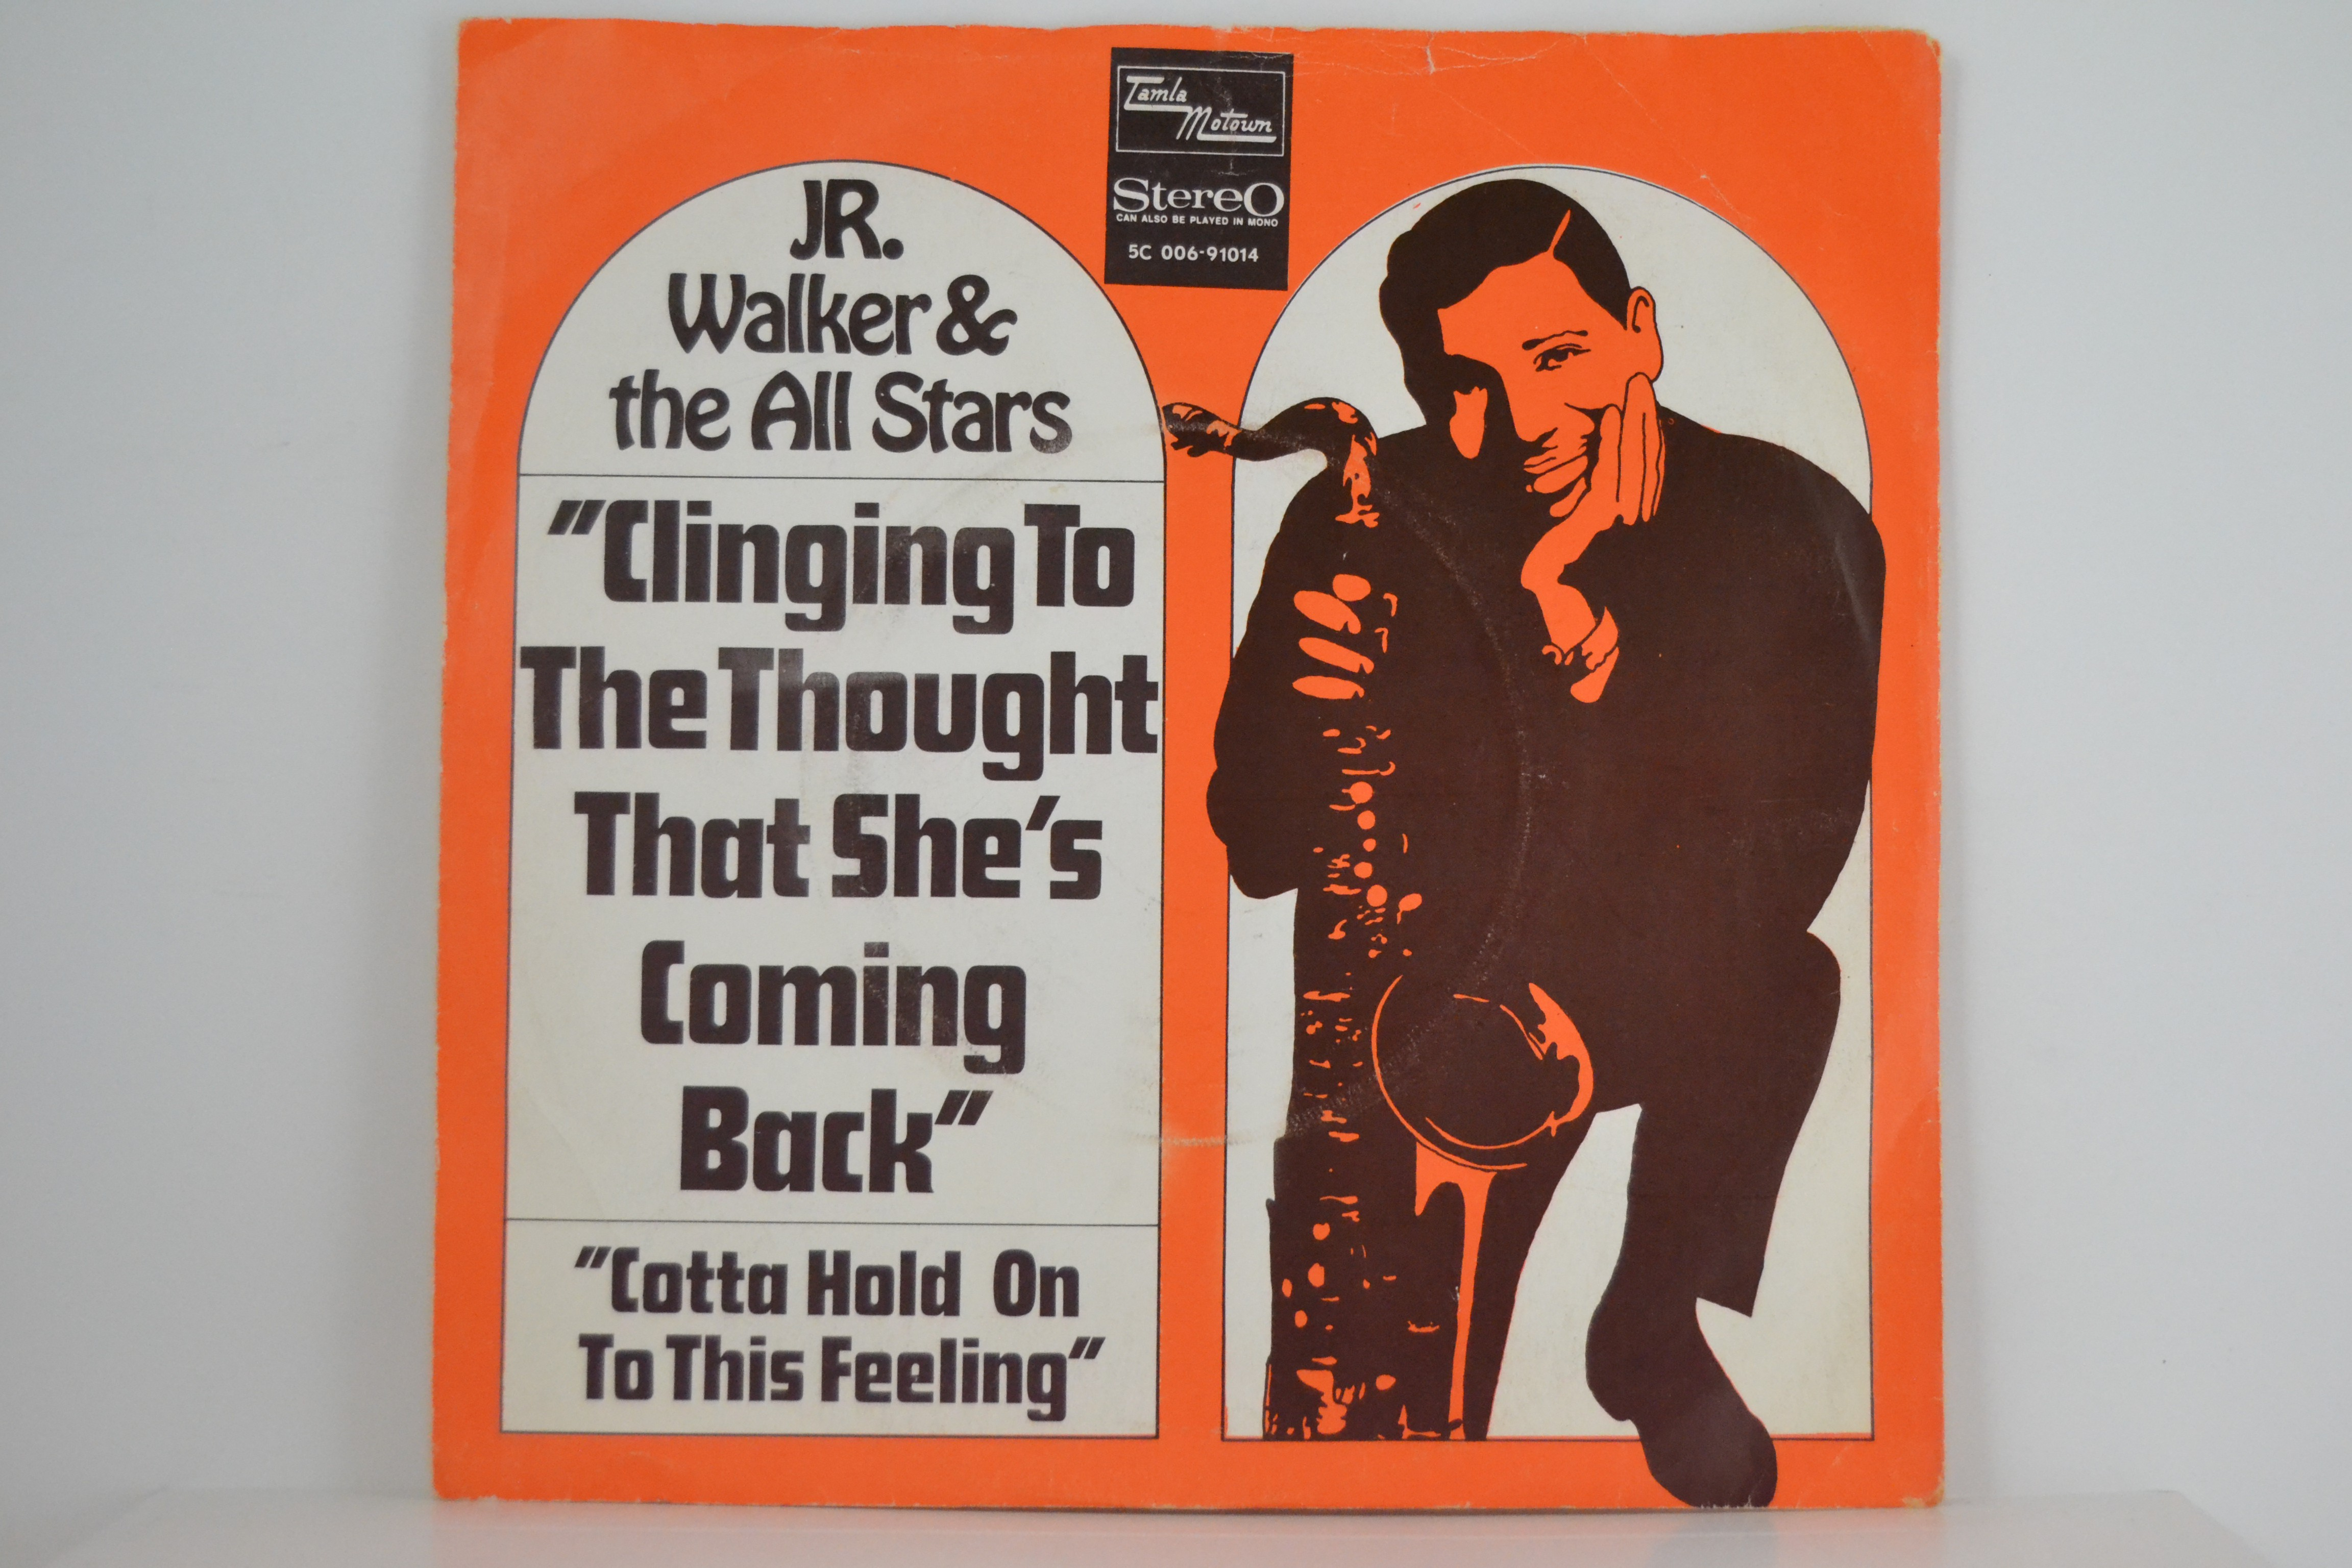 JR. WALKER & ALL STARS : Gotta hold on to this feeling / Clinging to the thought that she's coming back